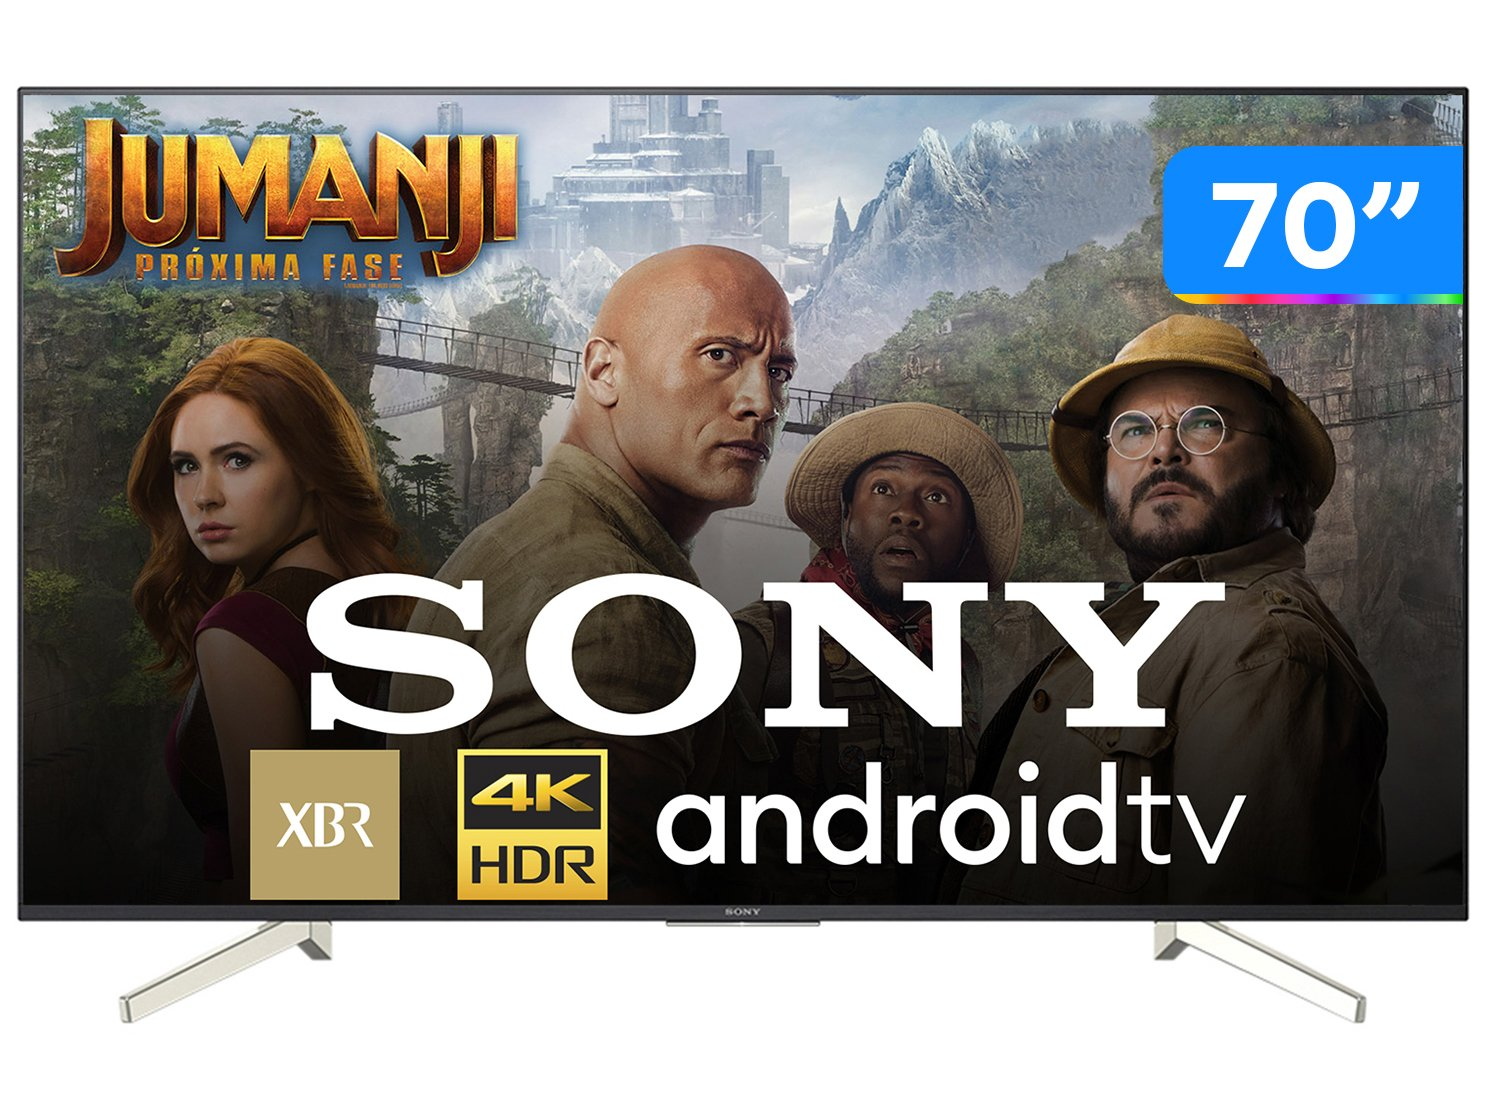 Foto 1 - Smart TV 4K LED 70 Sony XBR-70X835F Android - Wi-Fi HDR 4 HDMI 3 USB